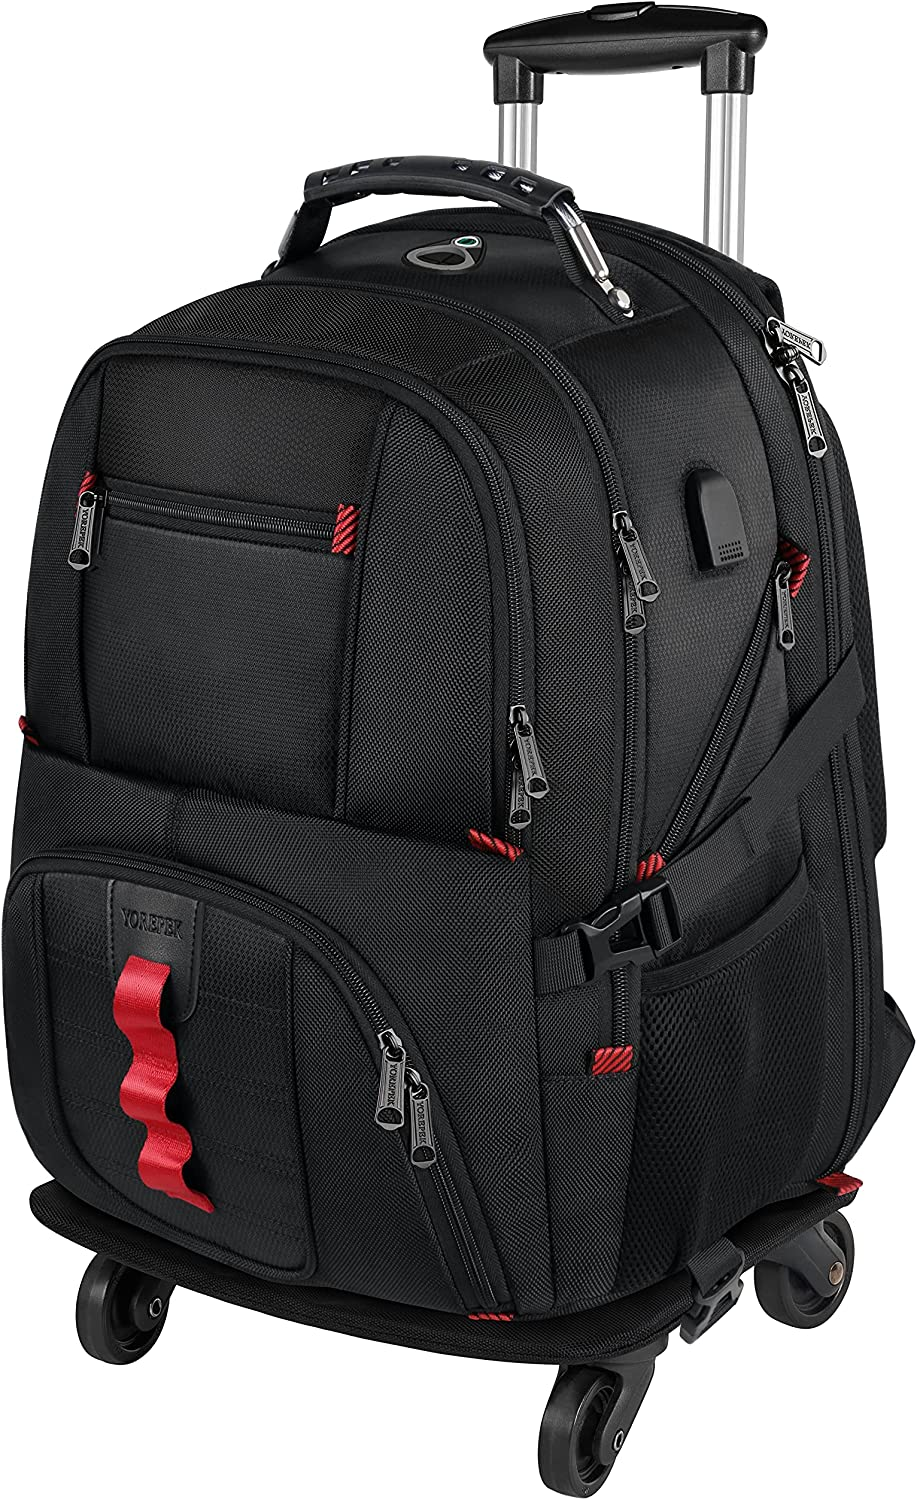 Rolling Backpack with Wheels, Backpack on Wheels for Men Women Adults,17 inch Wheeled Roller Computer Rucksack for Travel Business College School,Gifts for Men Women Boyfriend Girlfriend,Black